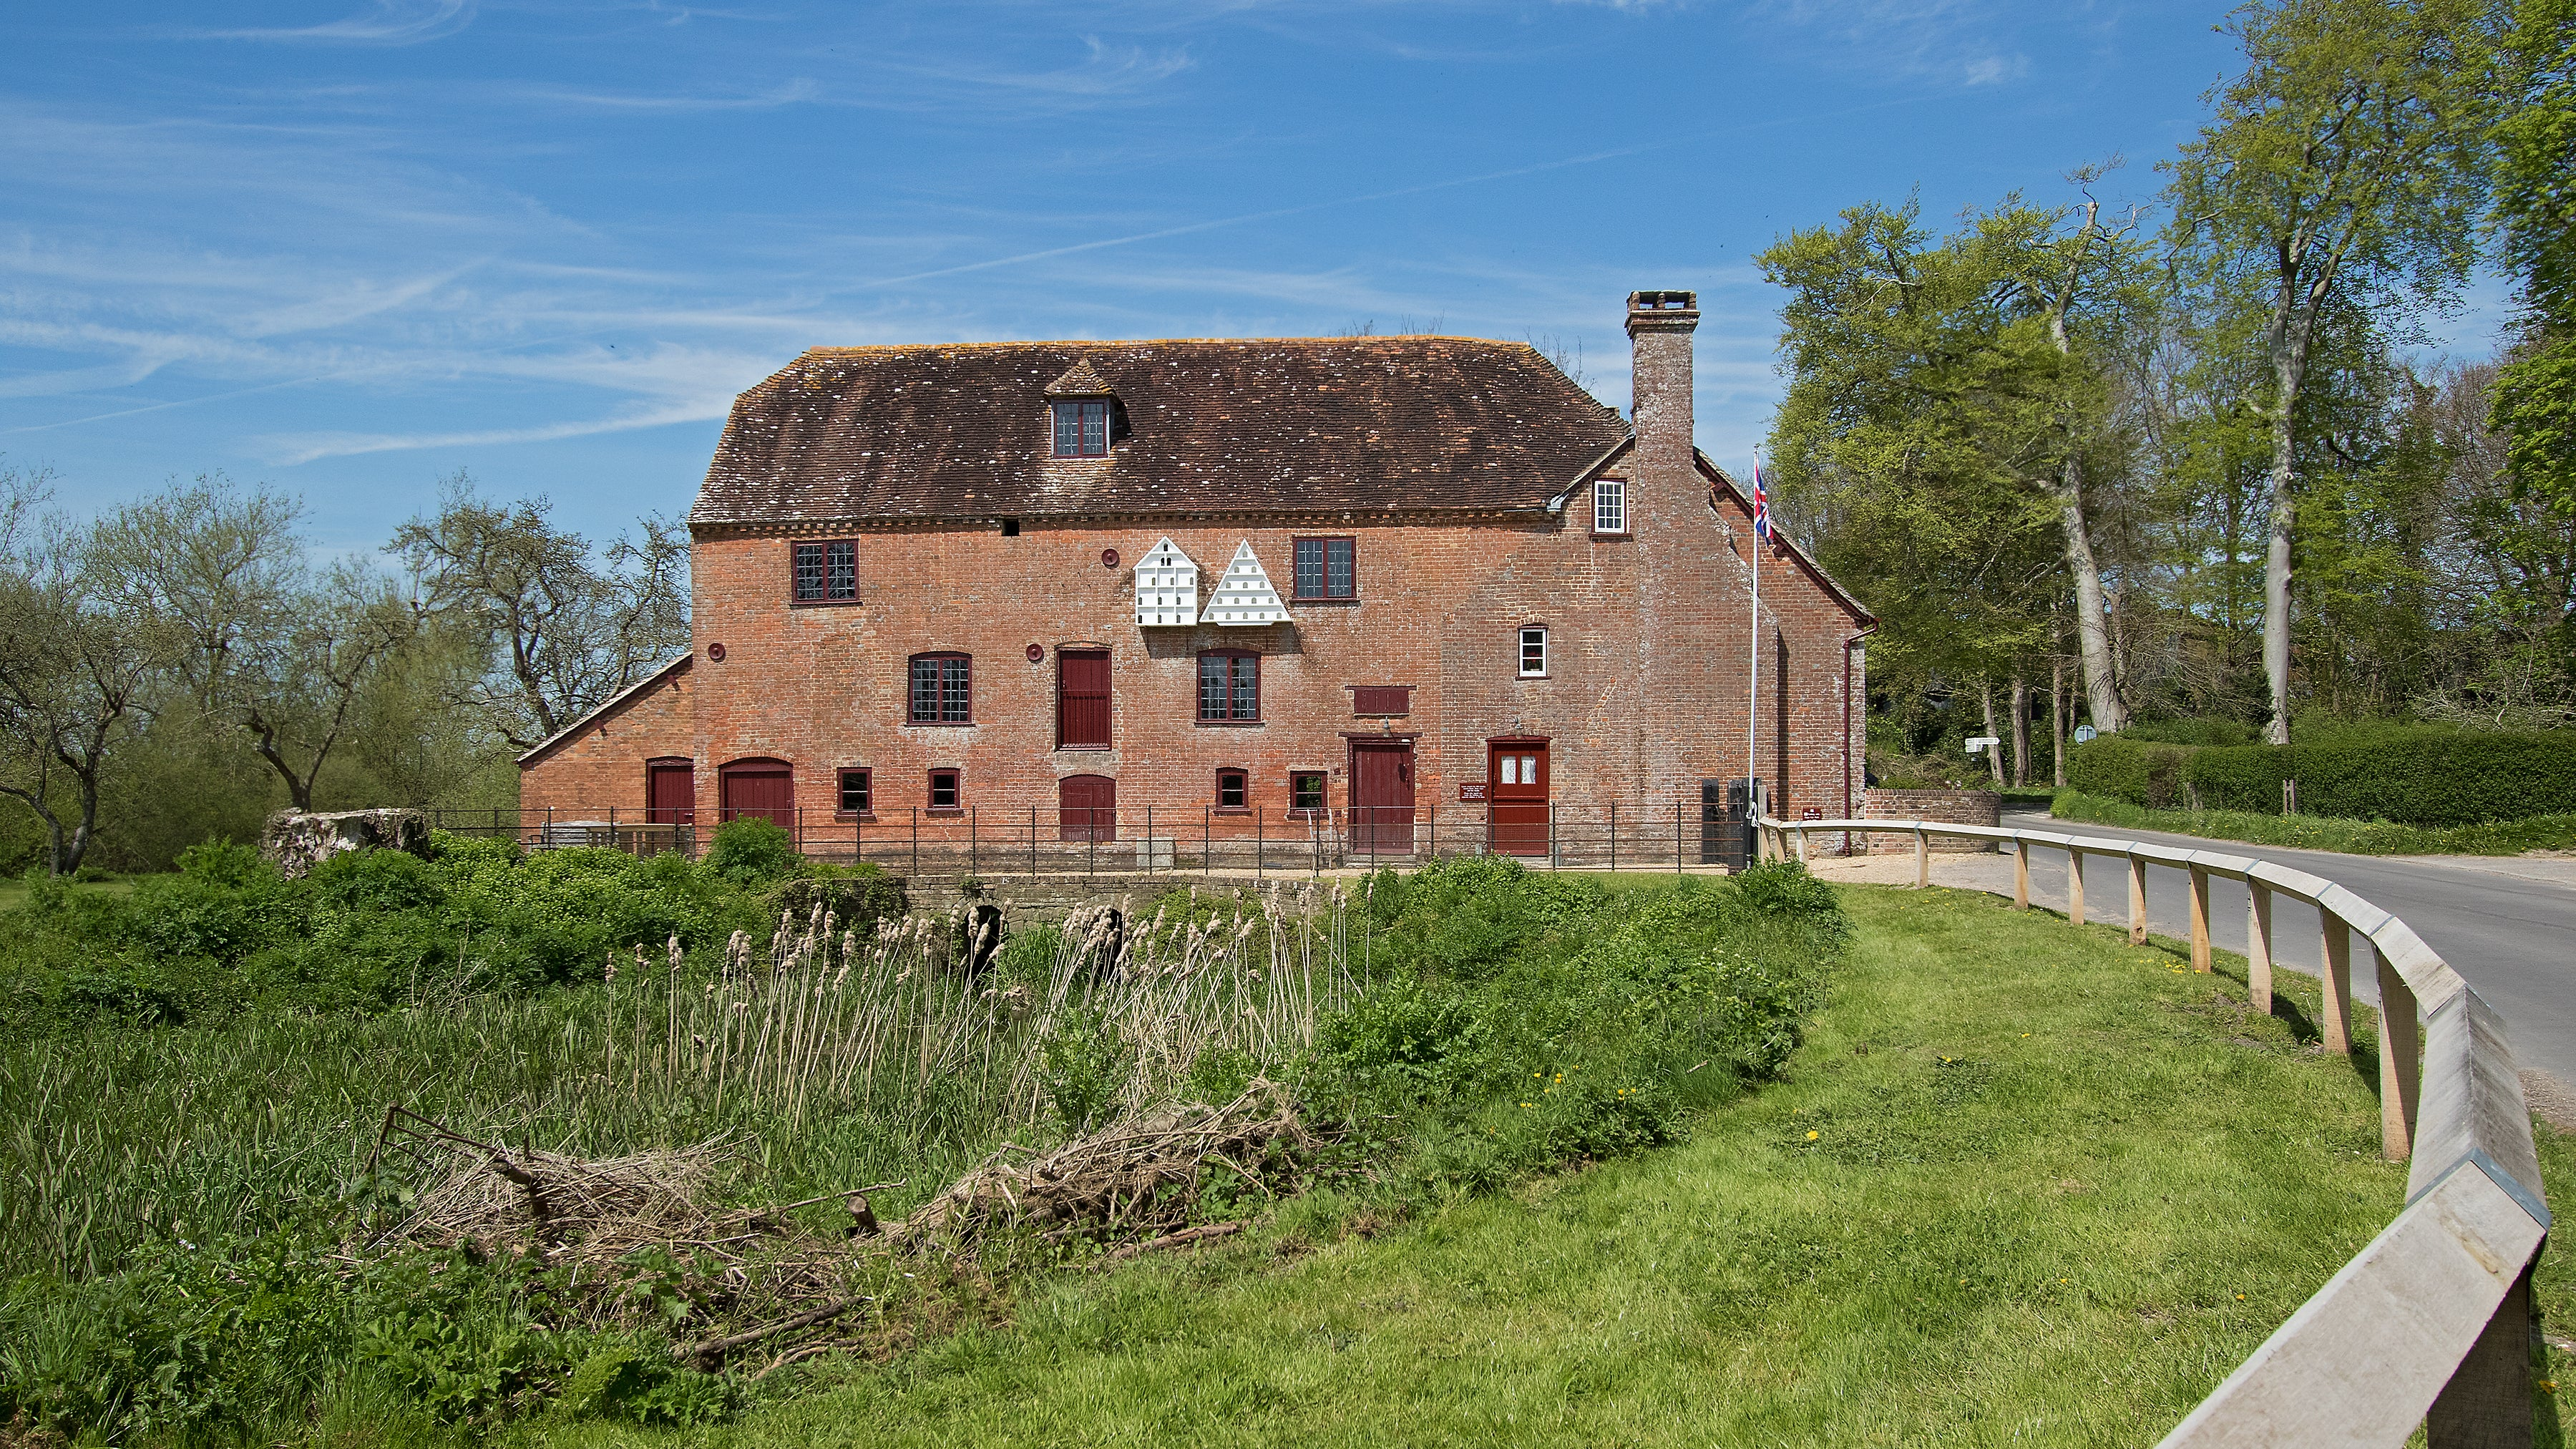 White Mill on the Kingston Lacy estate